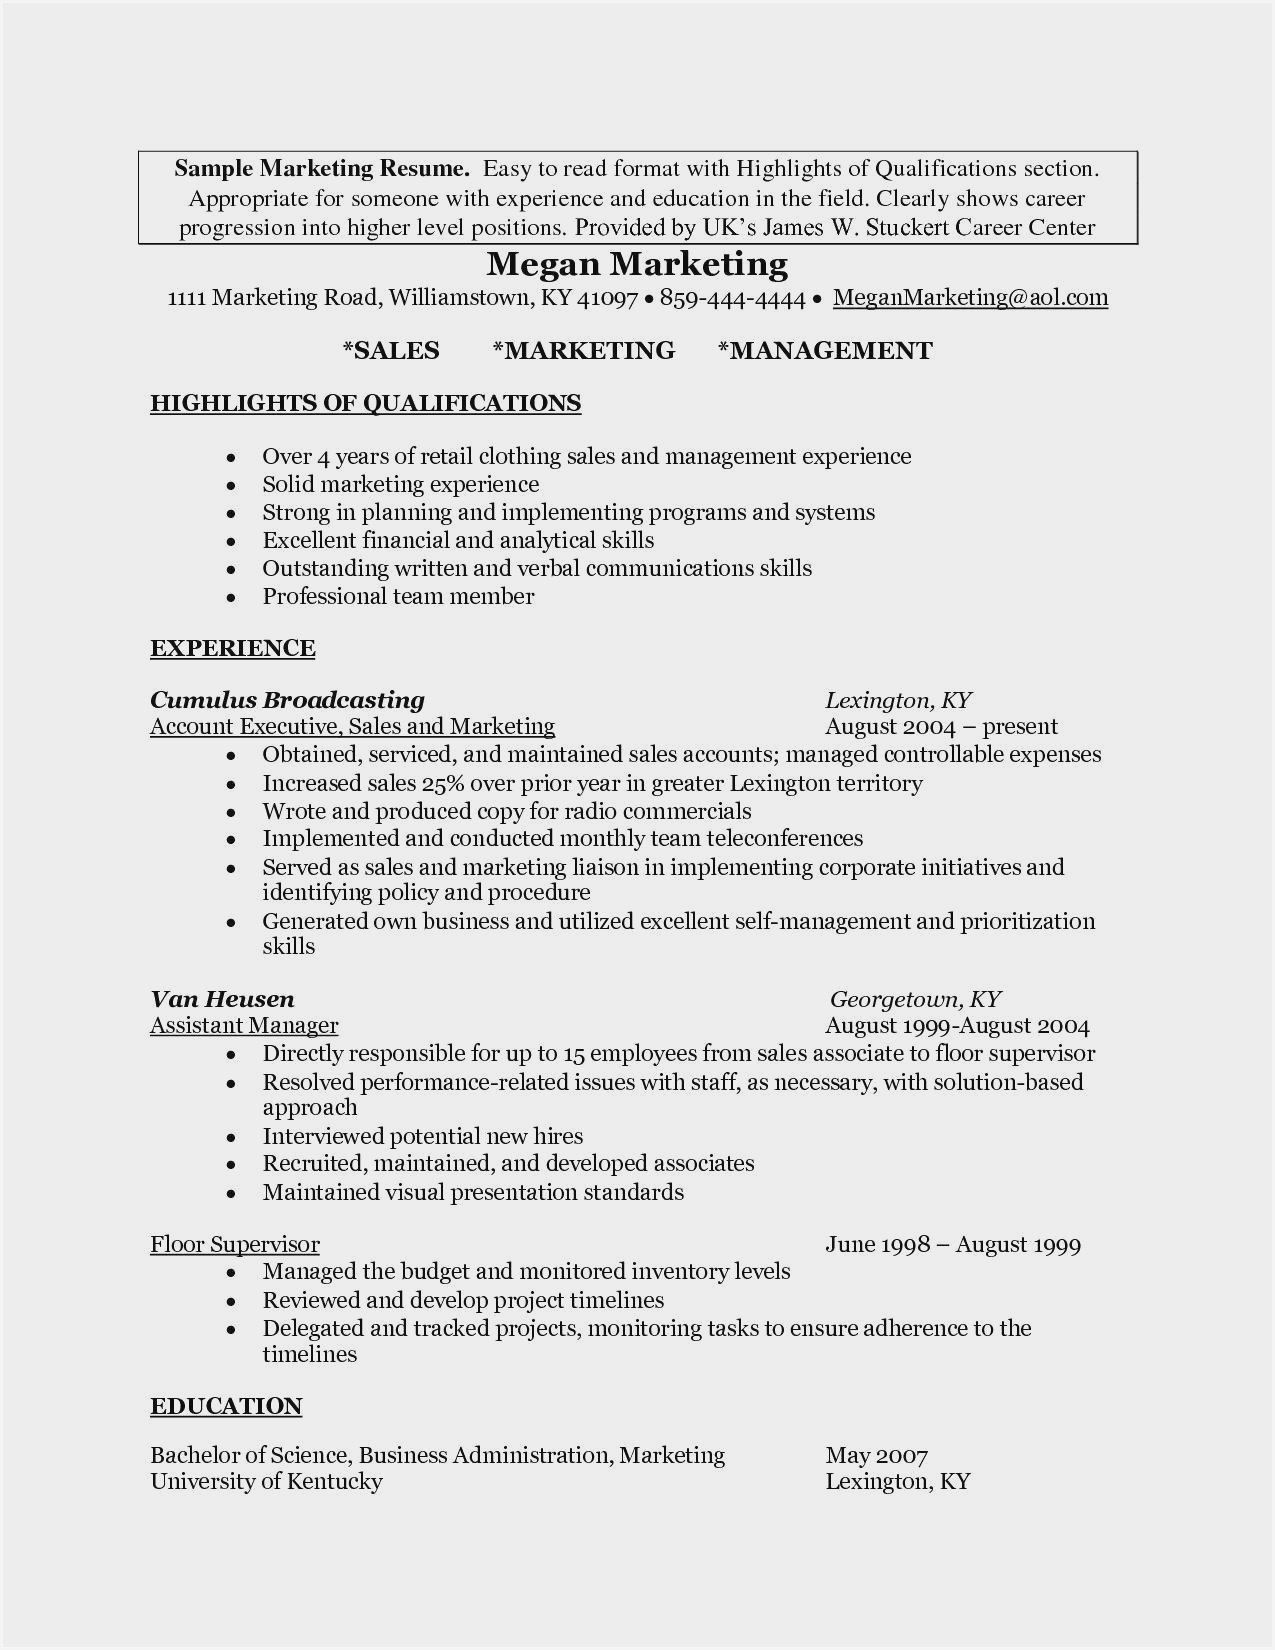 best senior executive resume format sample radio account mis sandblaster job description Resume Radio Account Executive Resume